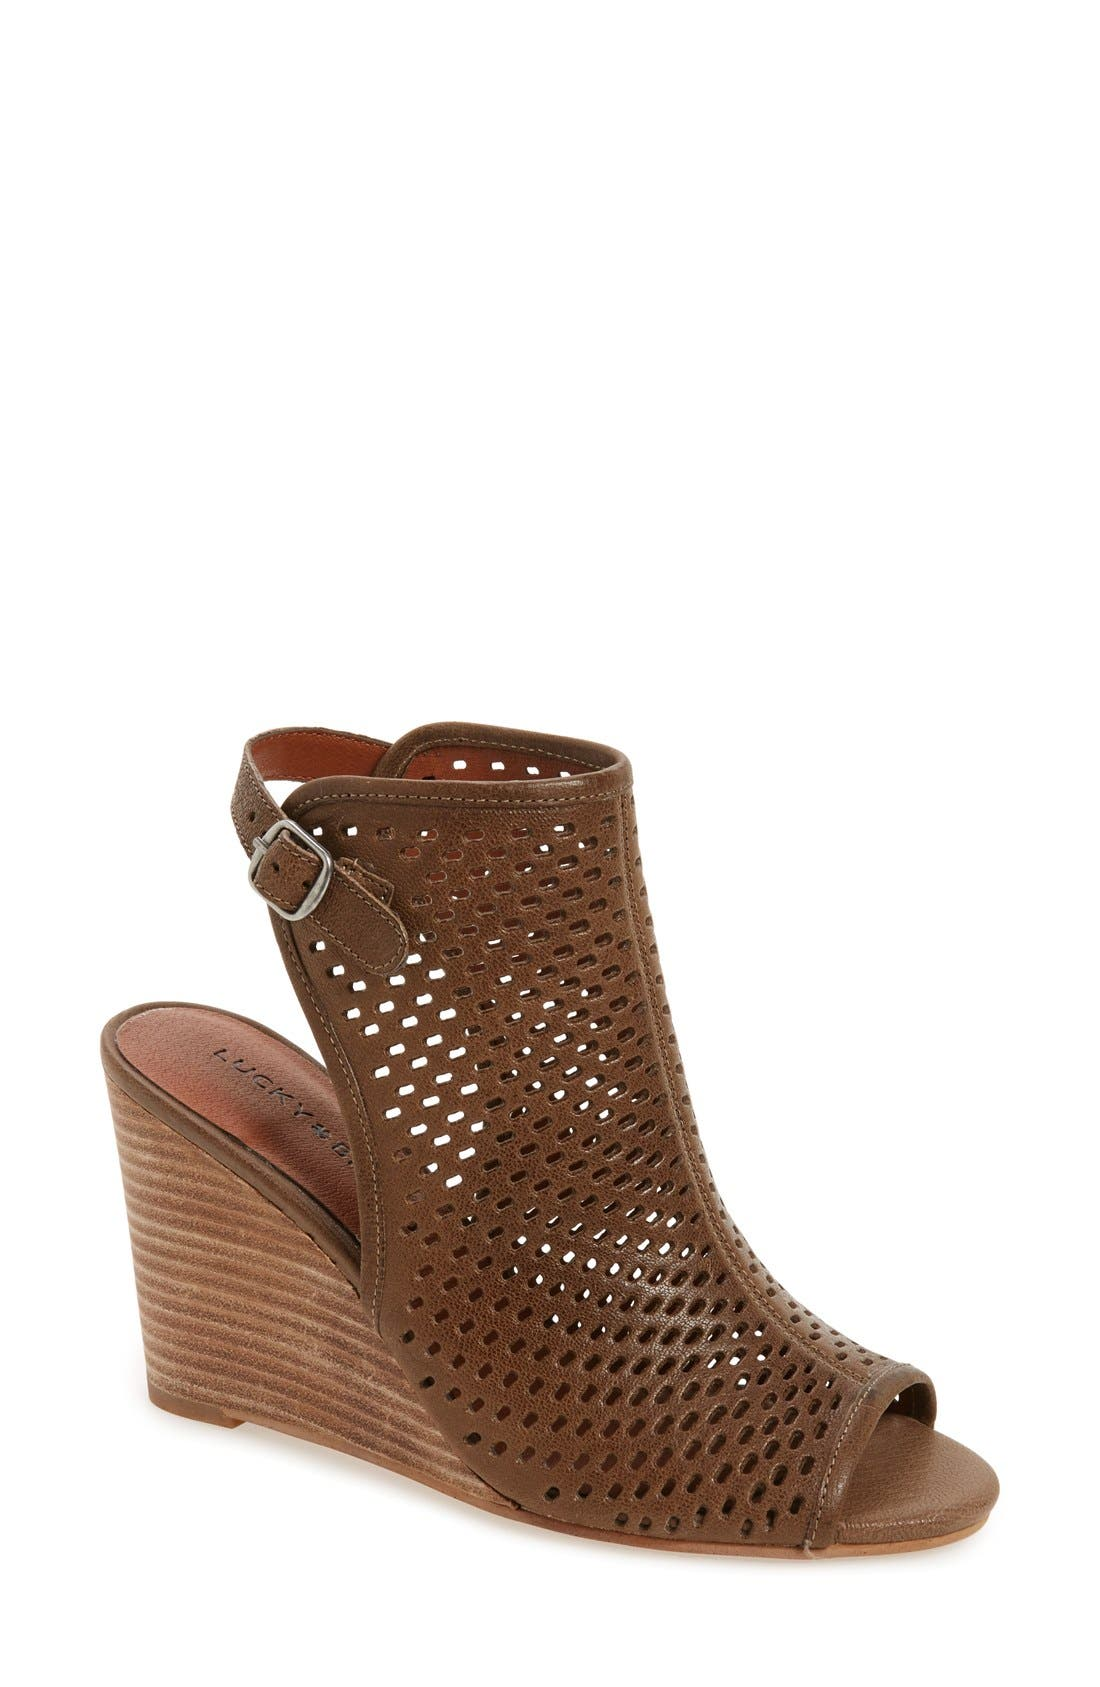 Alternate Image 1 Selected - Lucky Brand 'Rozina' Cutout Wedge Sandal (Women)